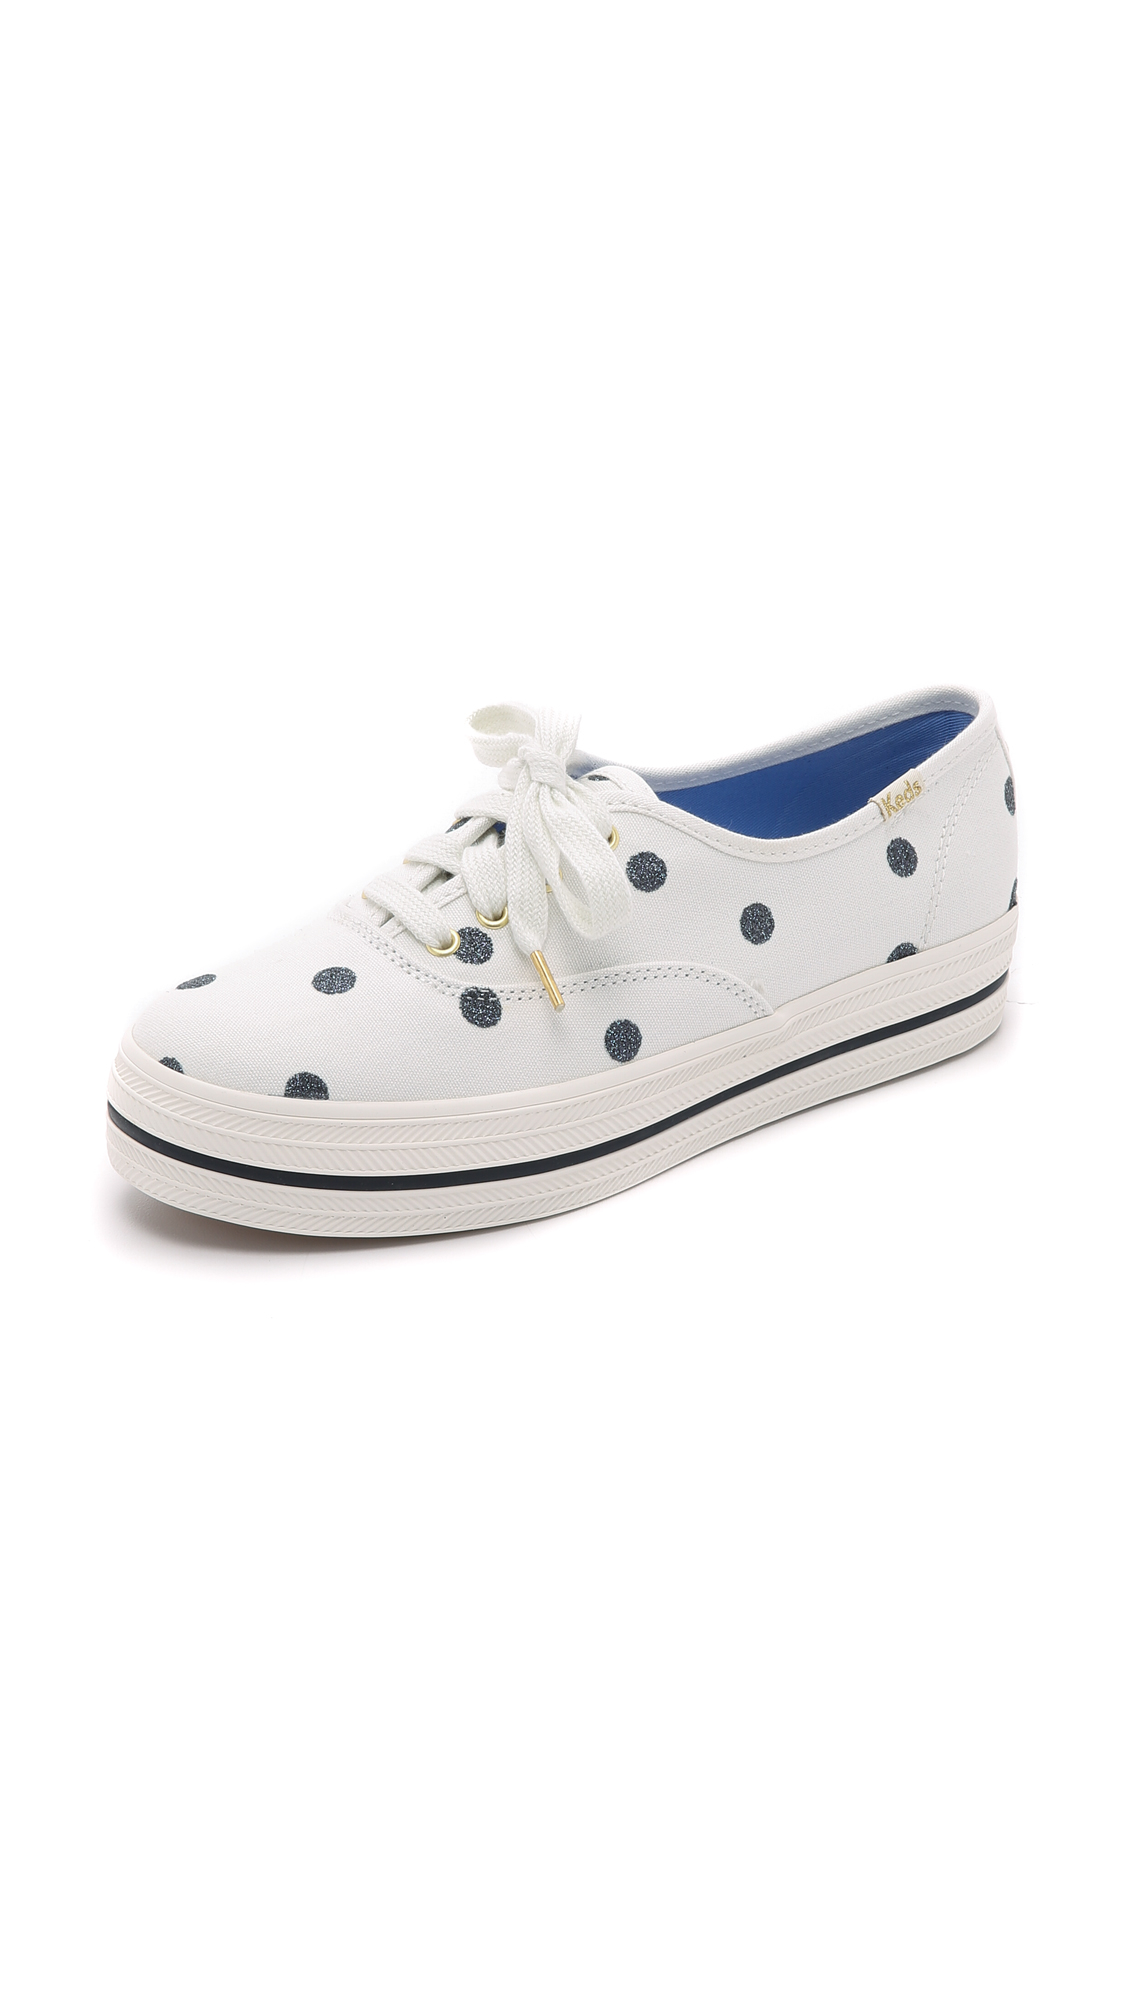 0470c3f957a1 Lyst - Kate Spade Keds For Kate Spade Triple Kick Dot Sneakers in ...